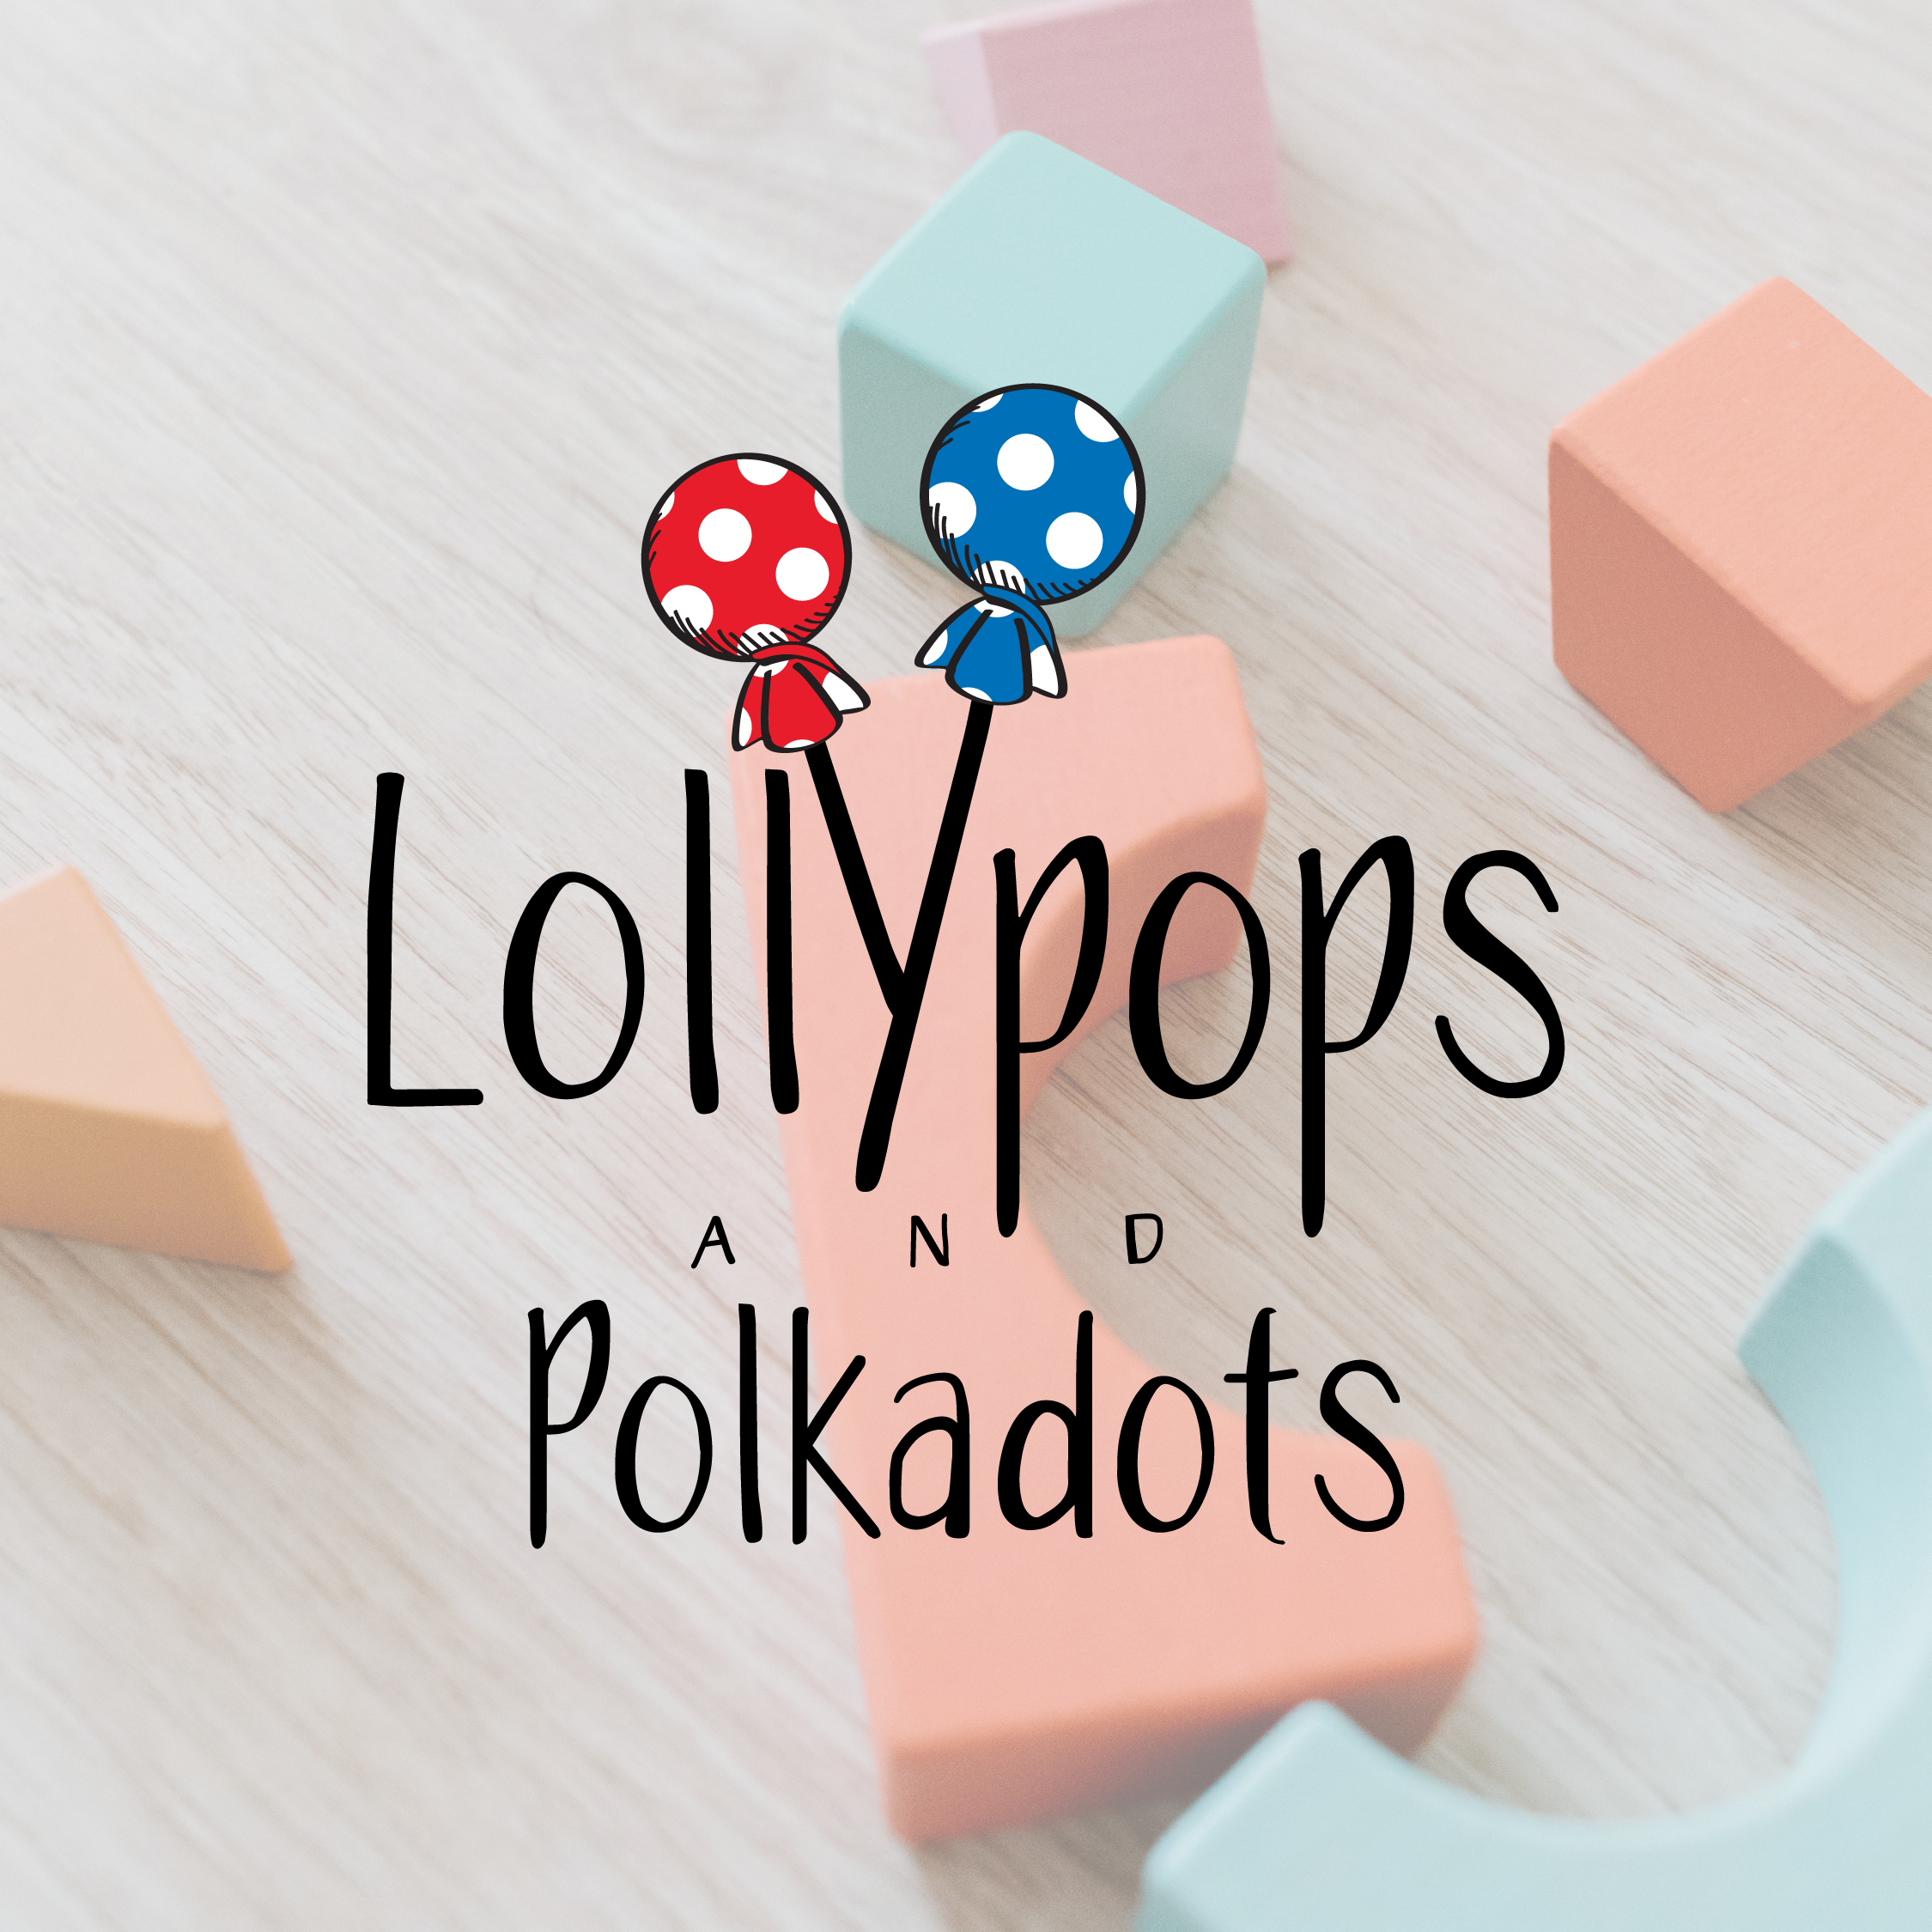 Lollypops and Polkadots